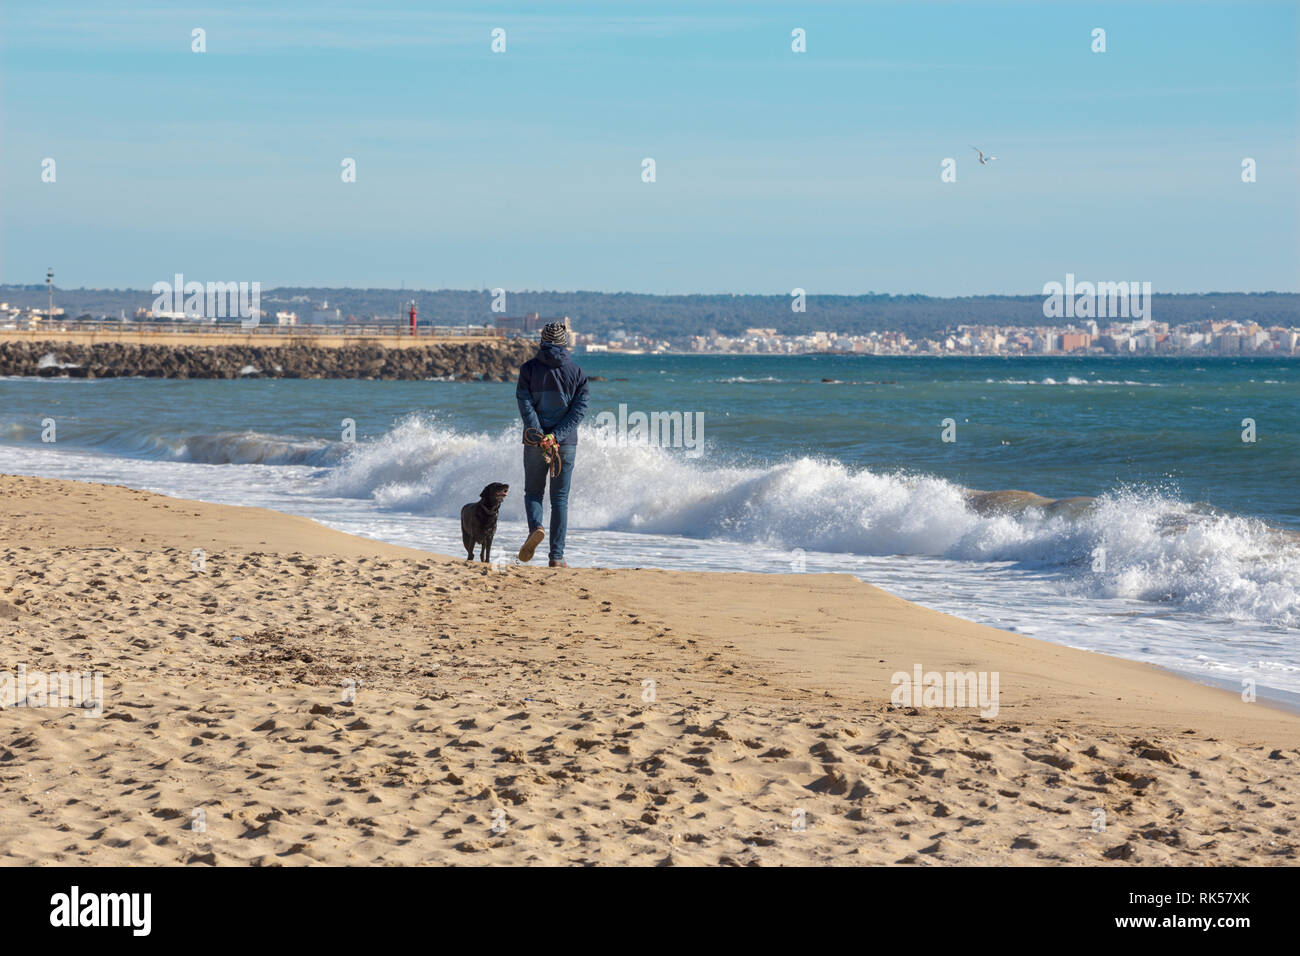 Palma de Mallorca - The beach of the city and and the man at the rest with the dog. - Stock Image